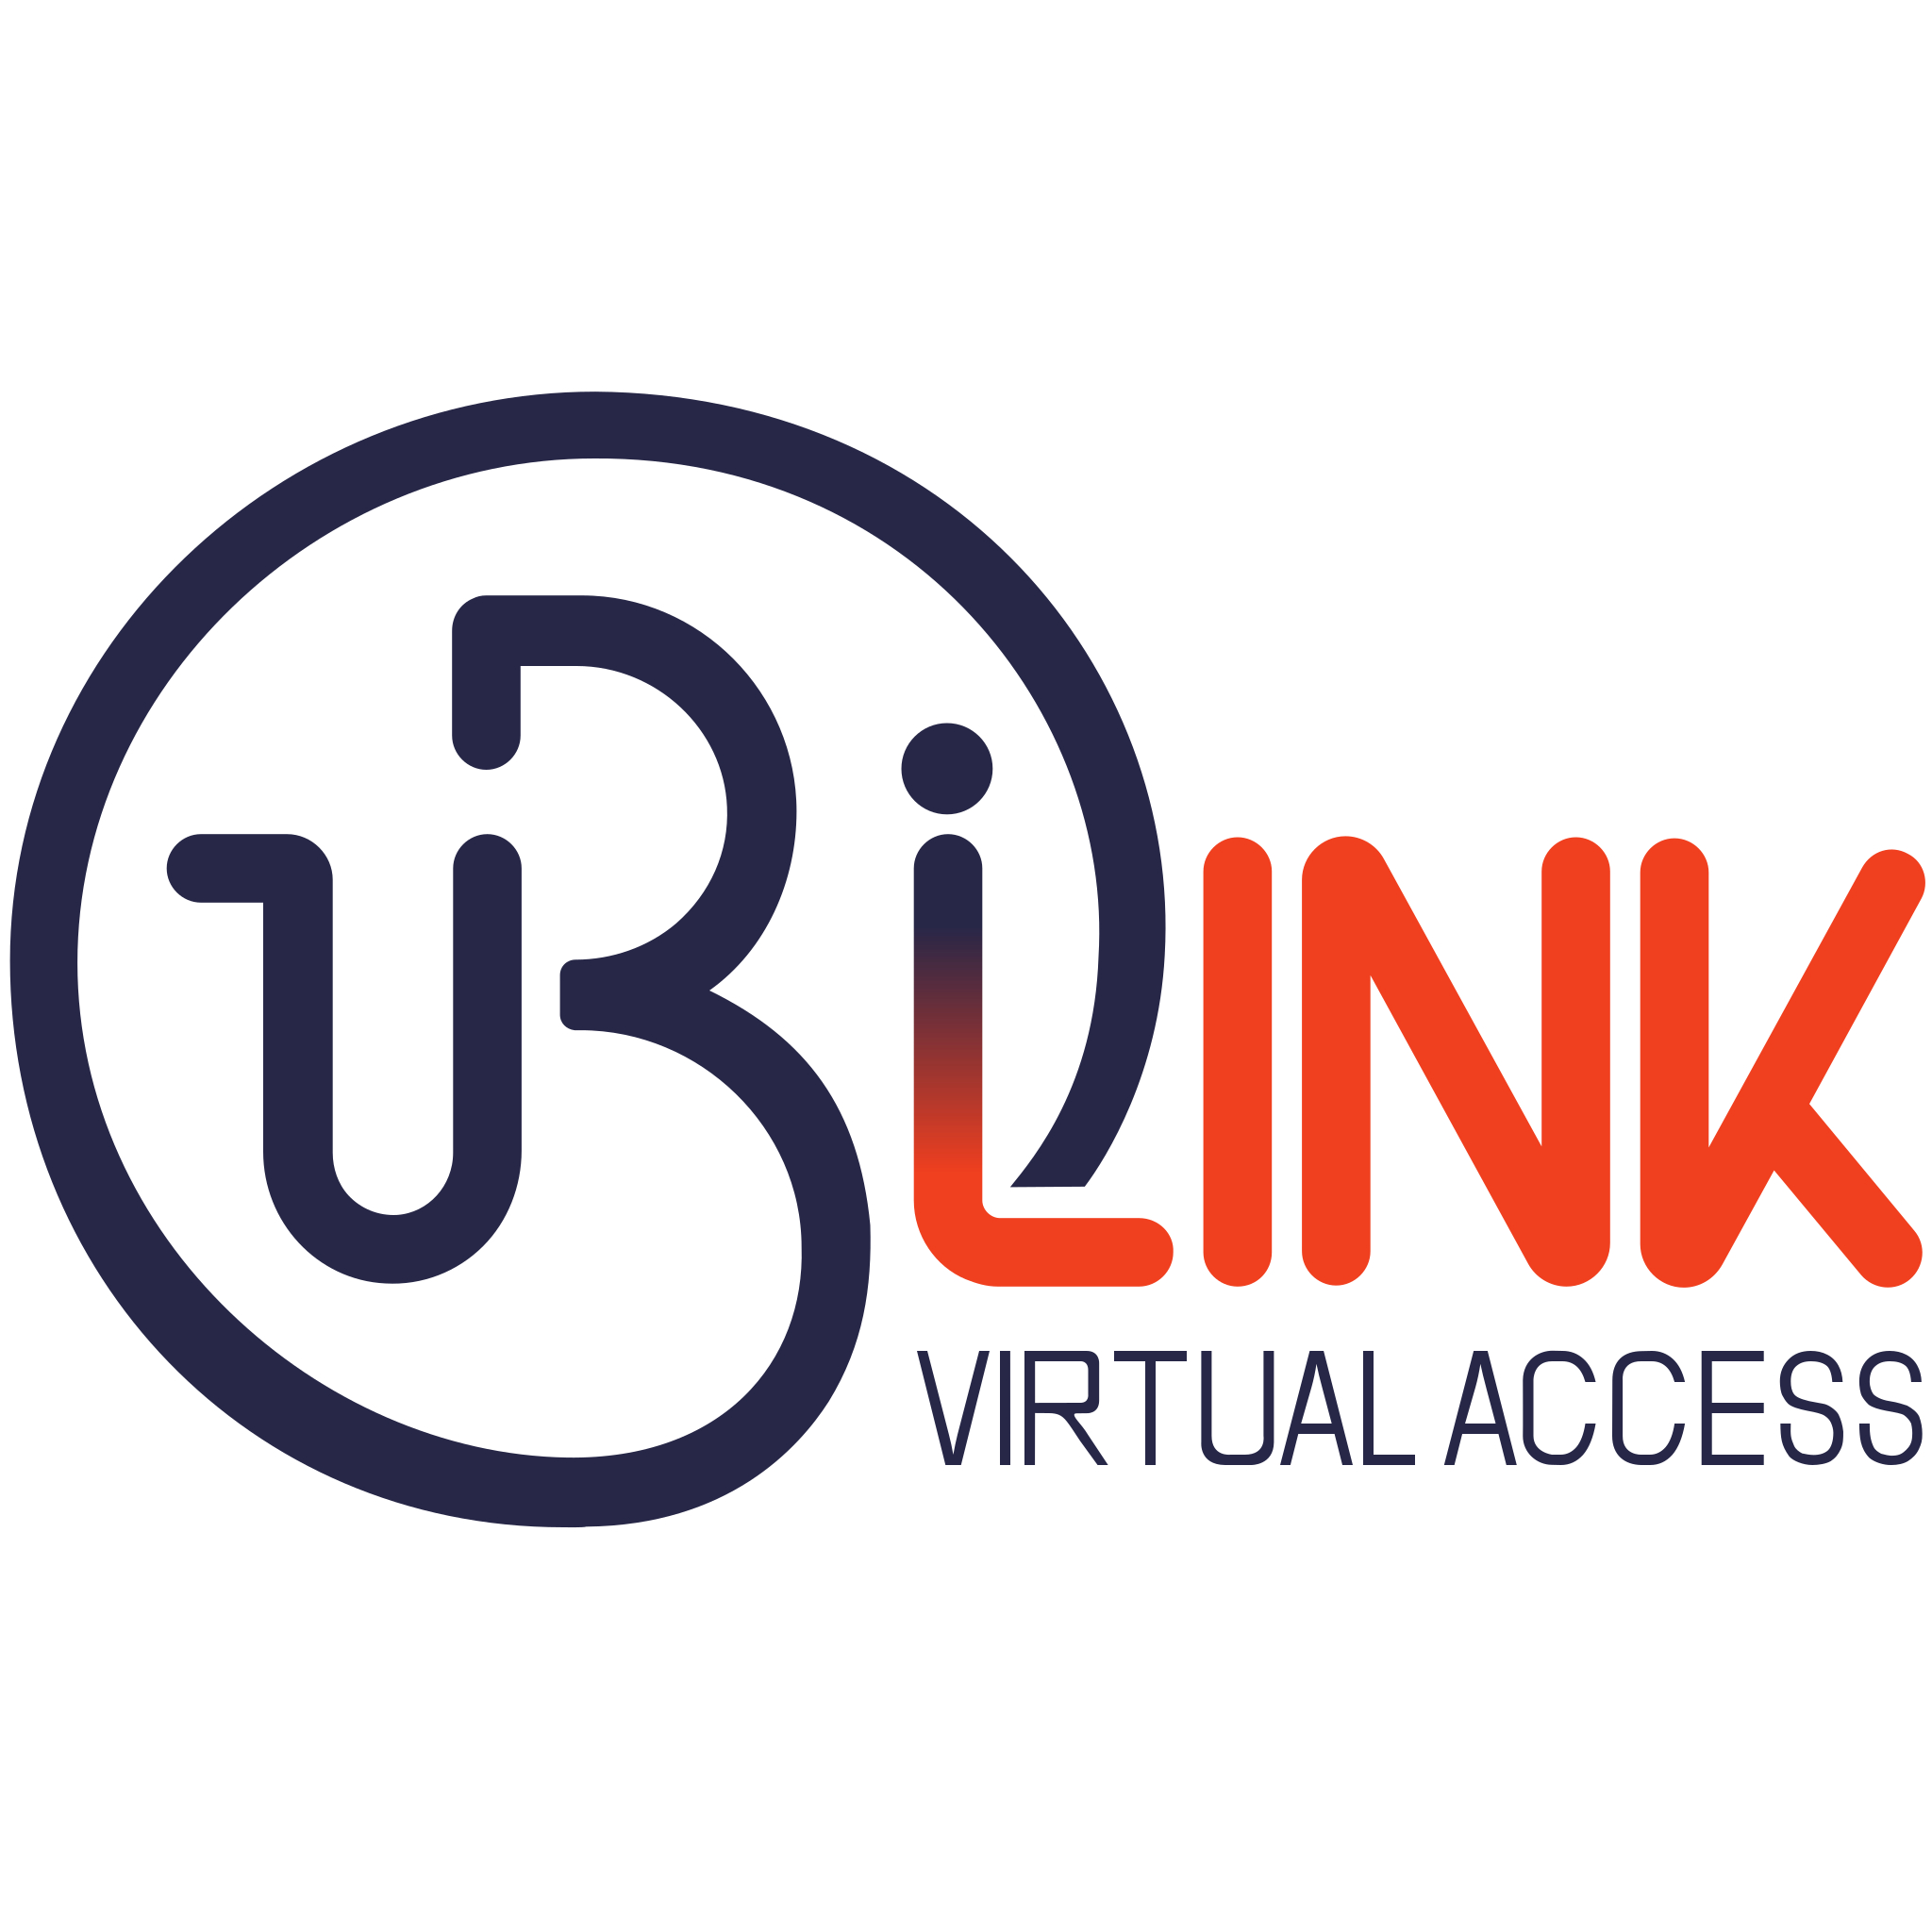 Ubilink ✪New Exhibitor